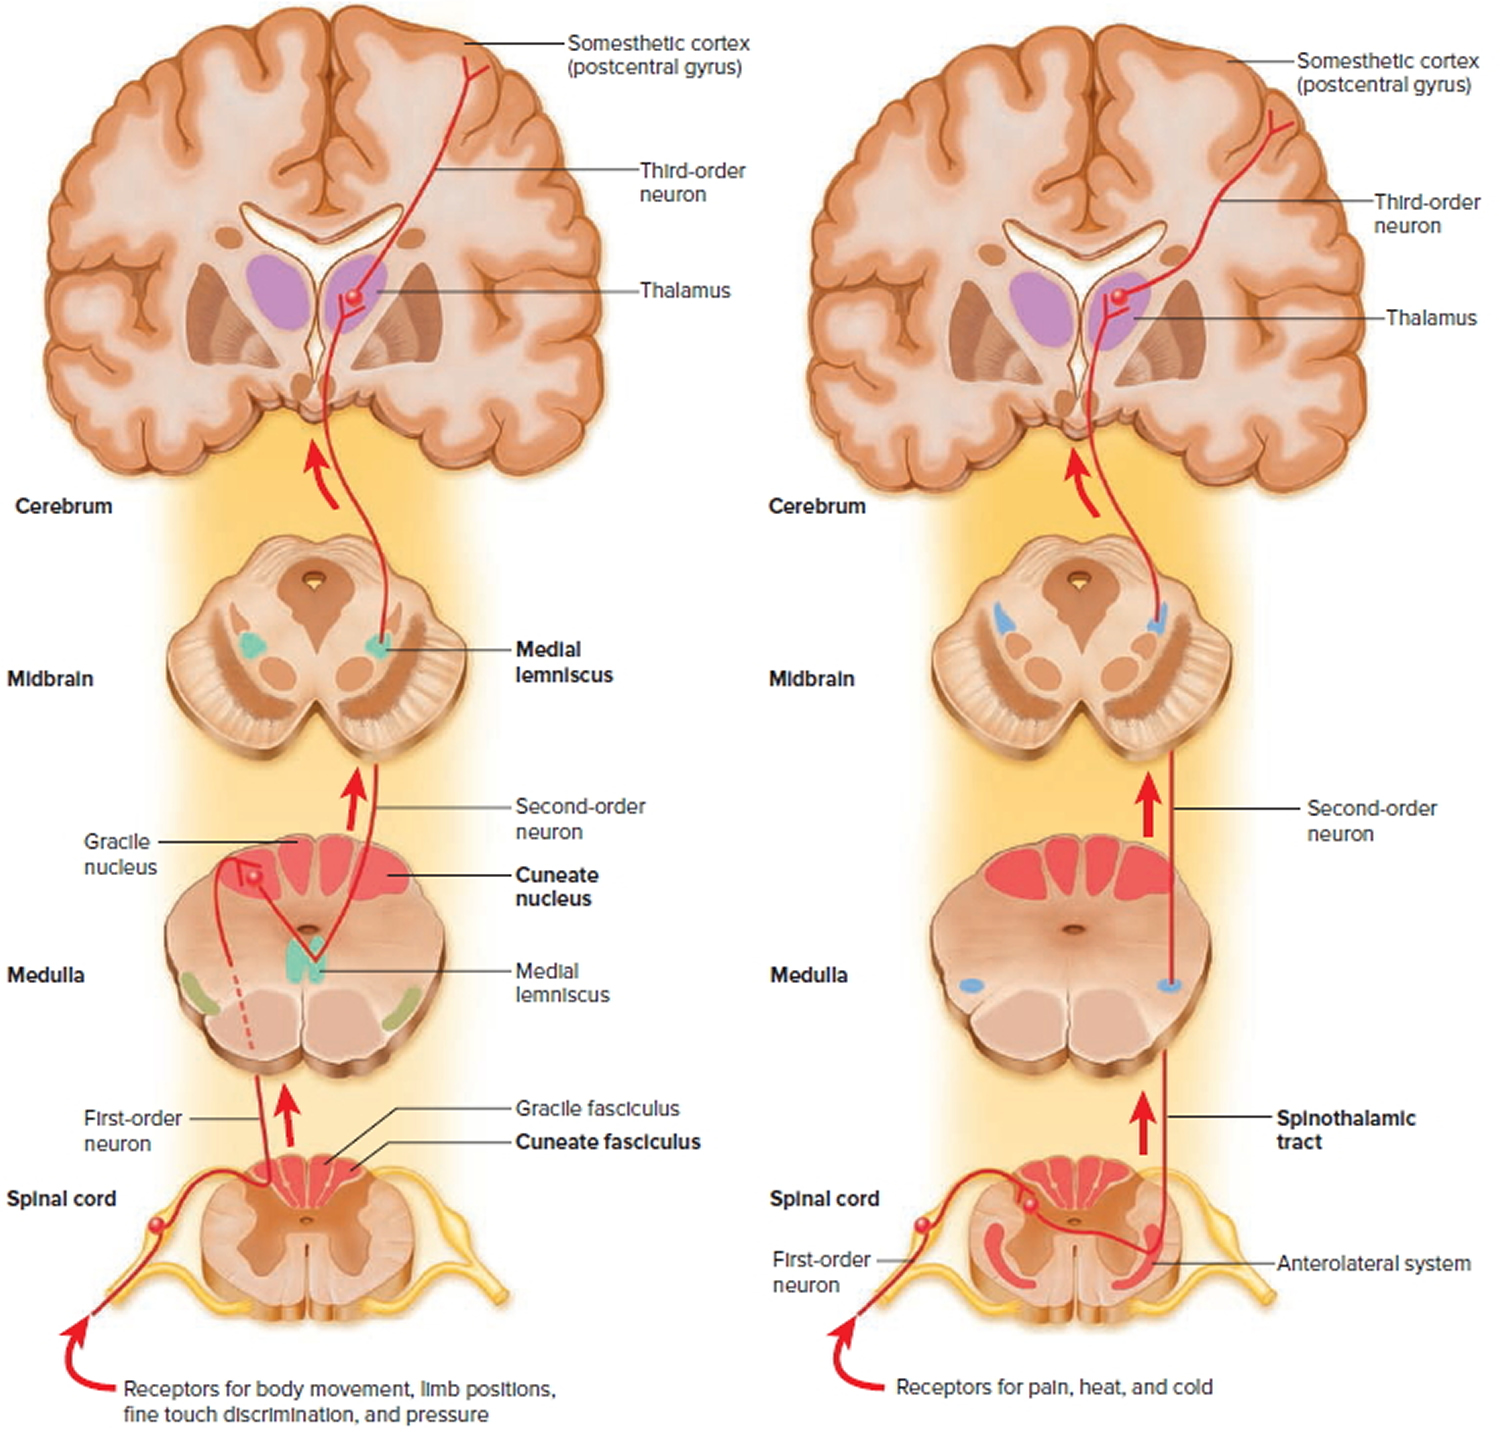 Spinal Cord Injury - Diganosis, Symptoms, Treatment and Rehabilitation